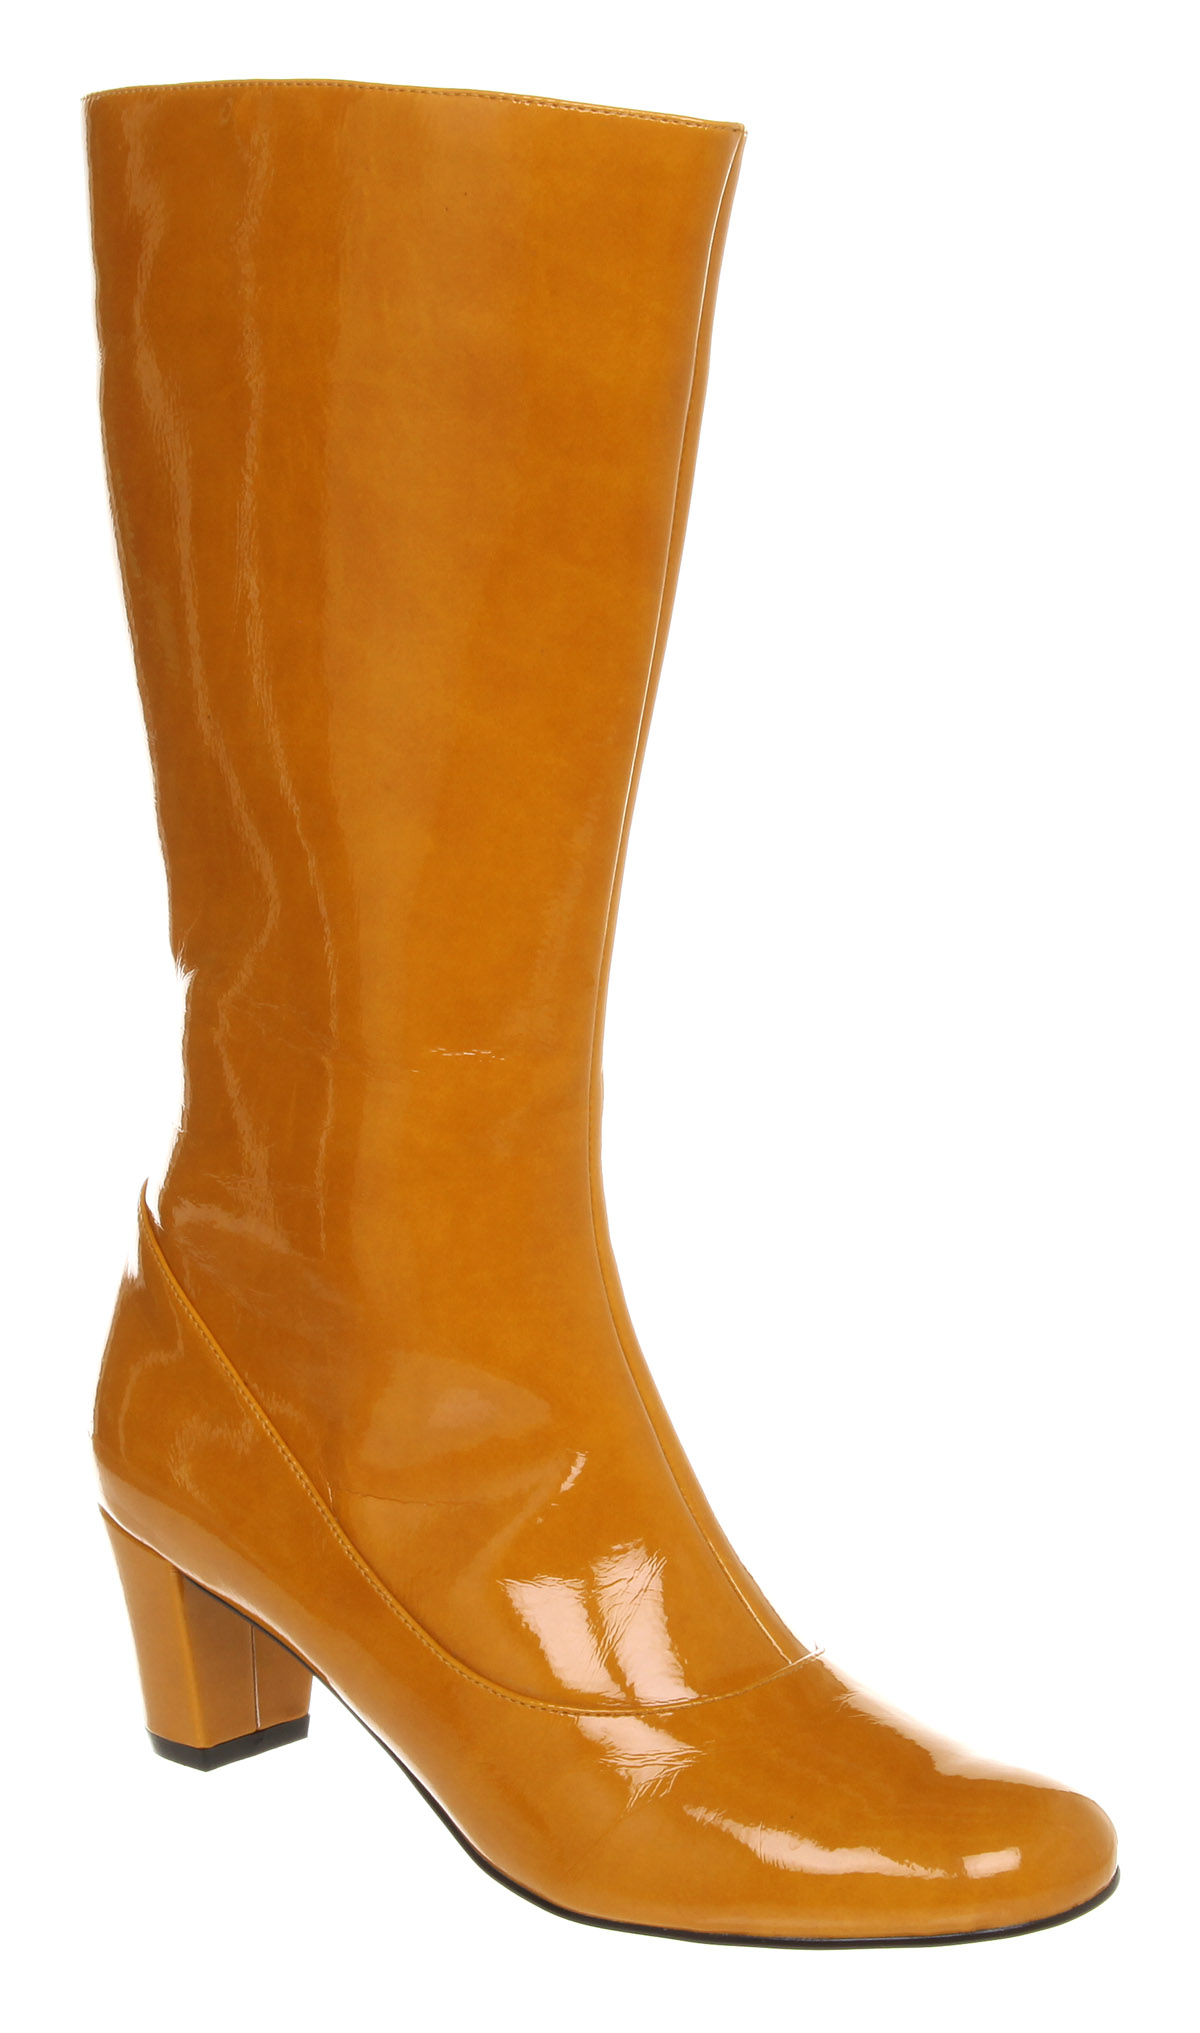 High heeled vegan patent rain boots